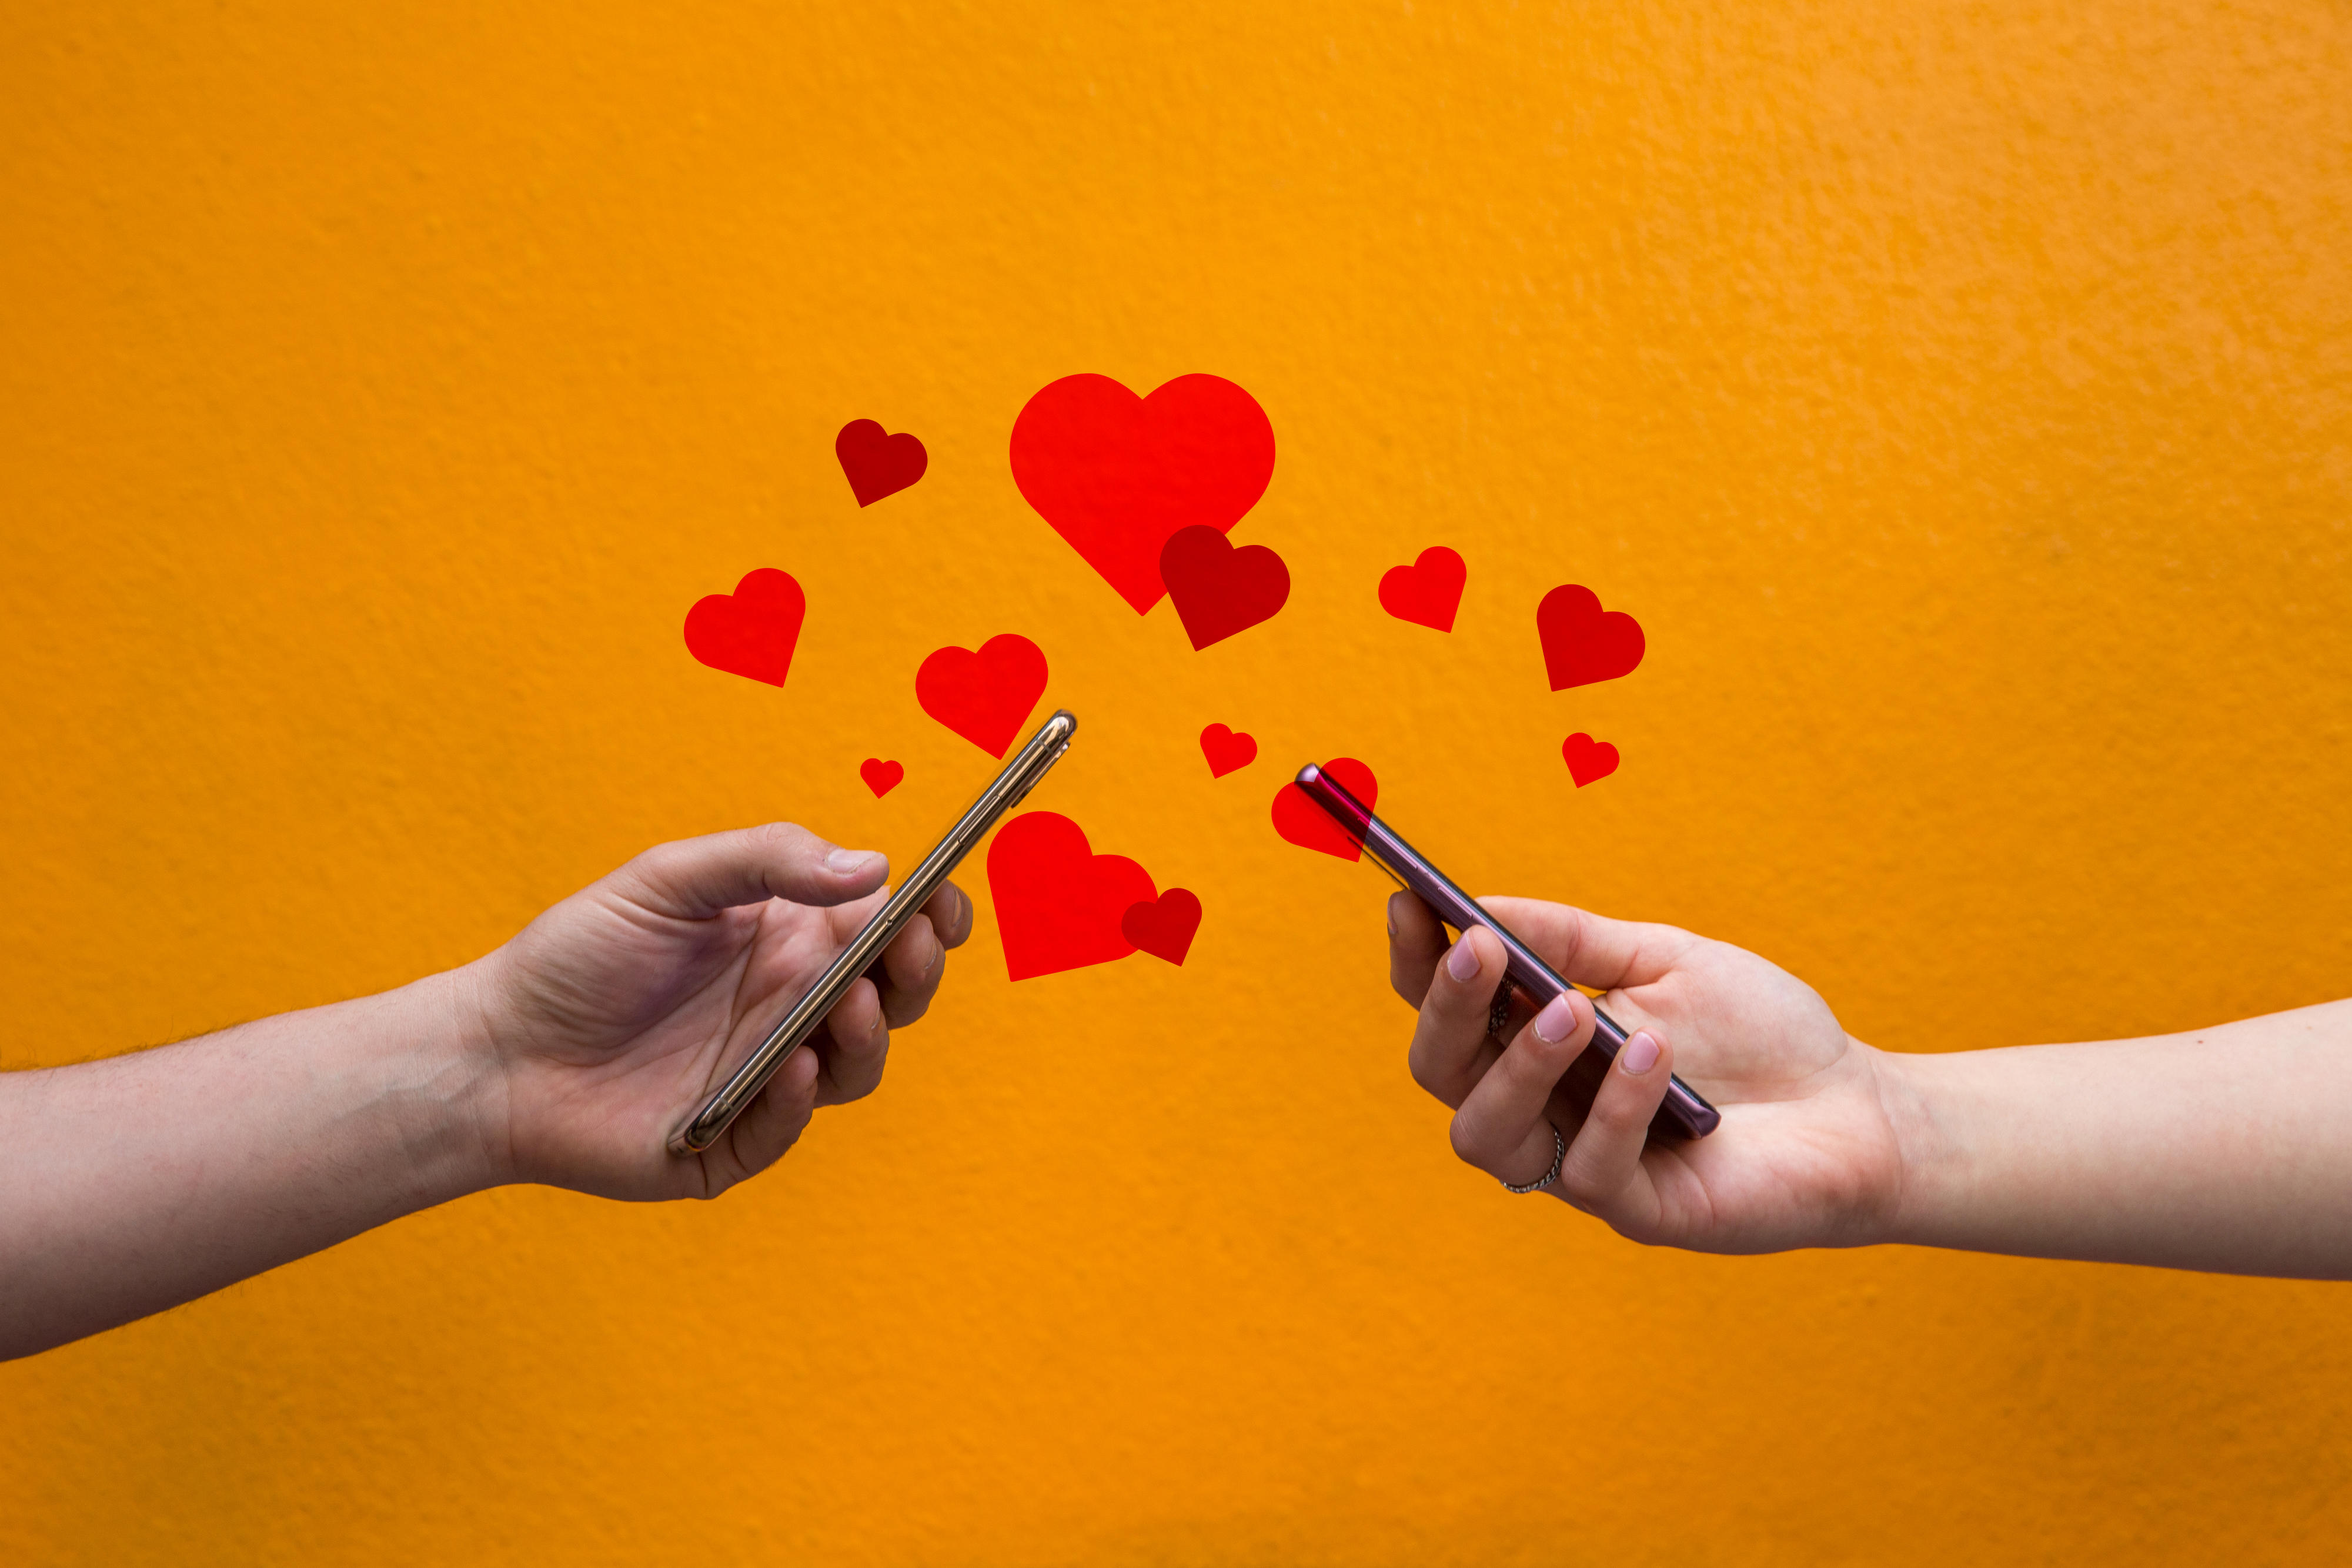 dating-apps-love-hearts-valentines-1